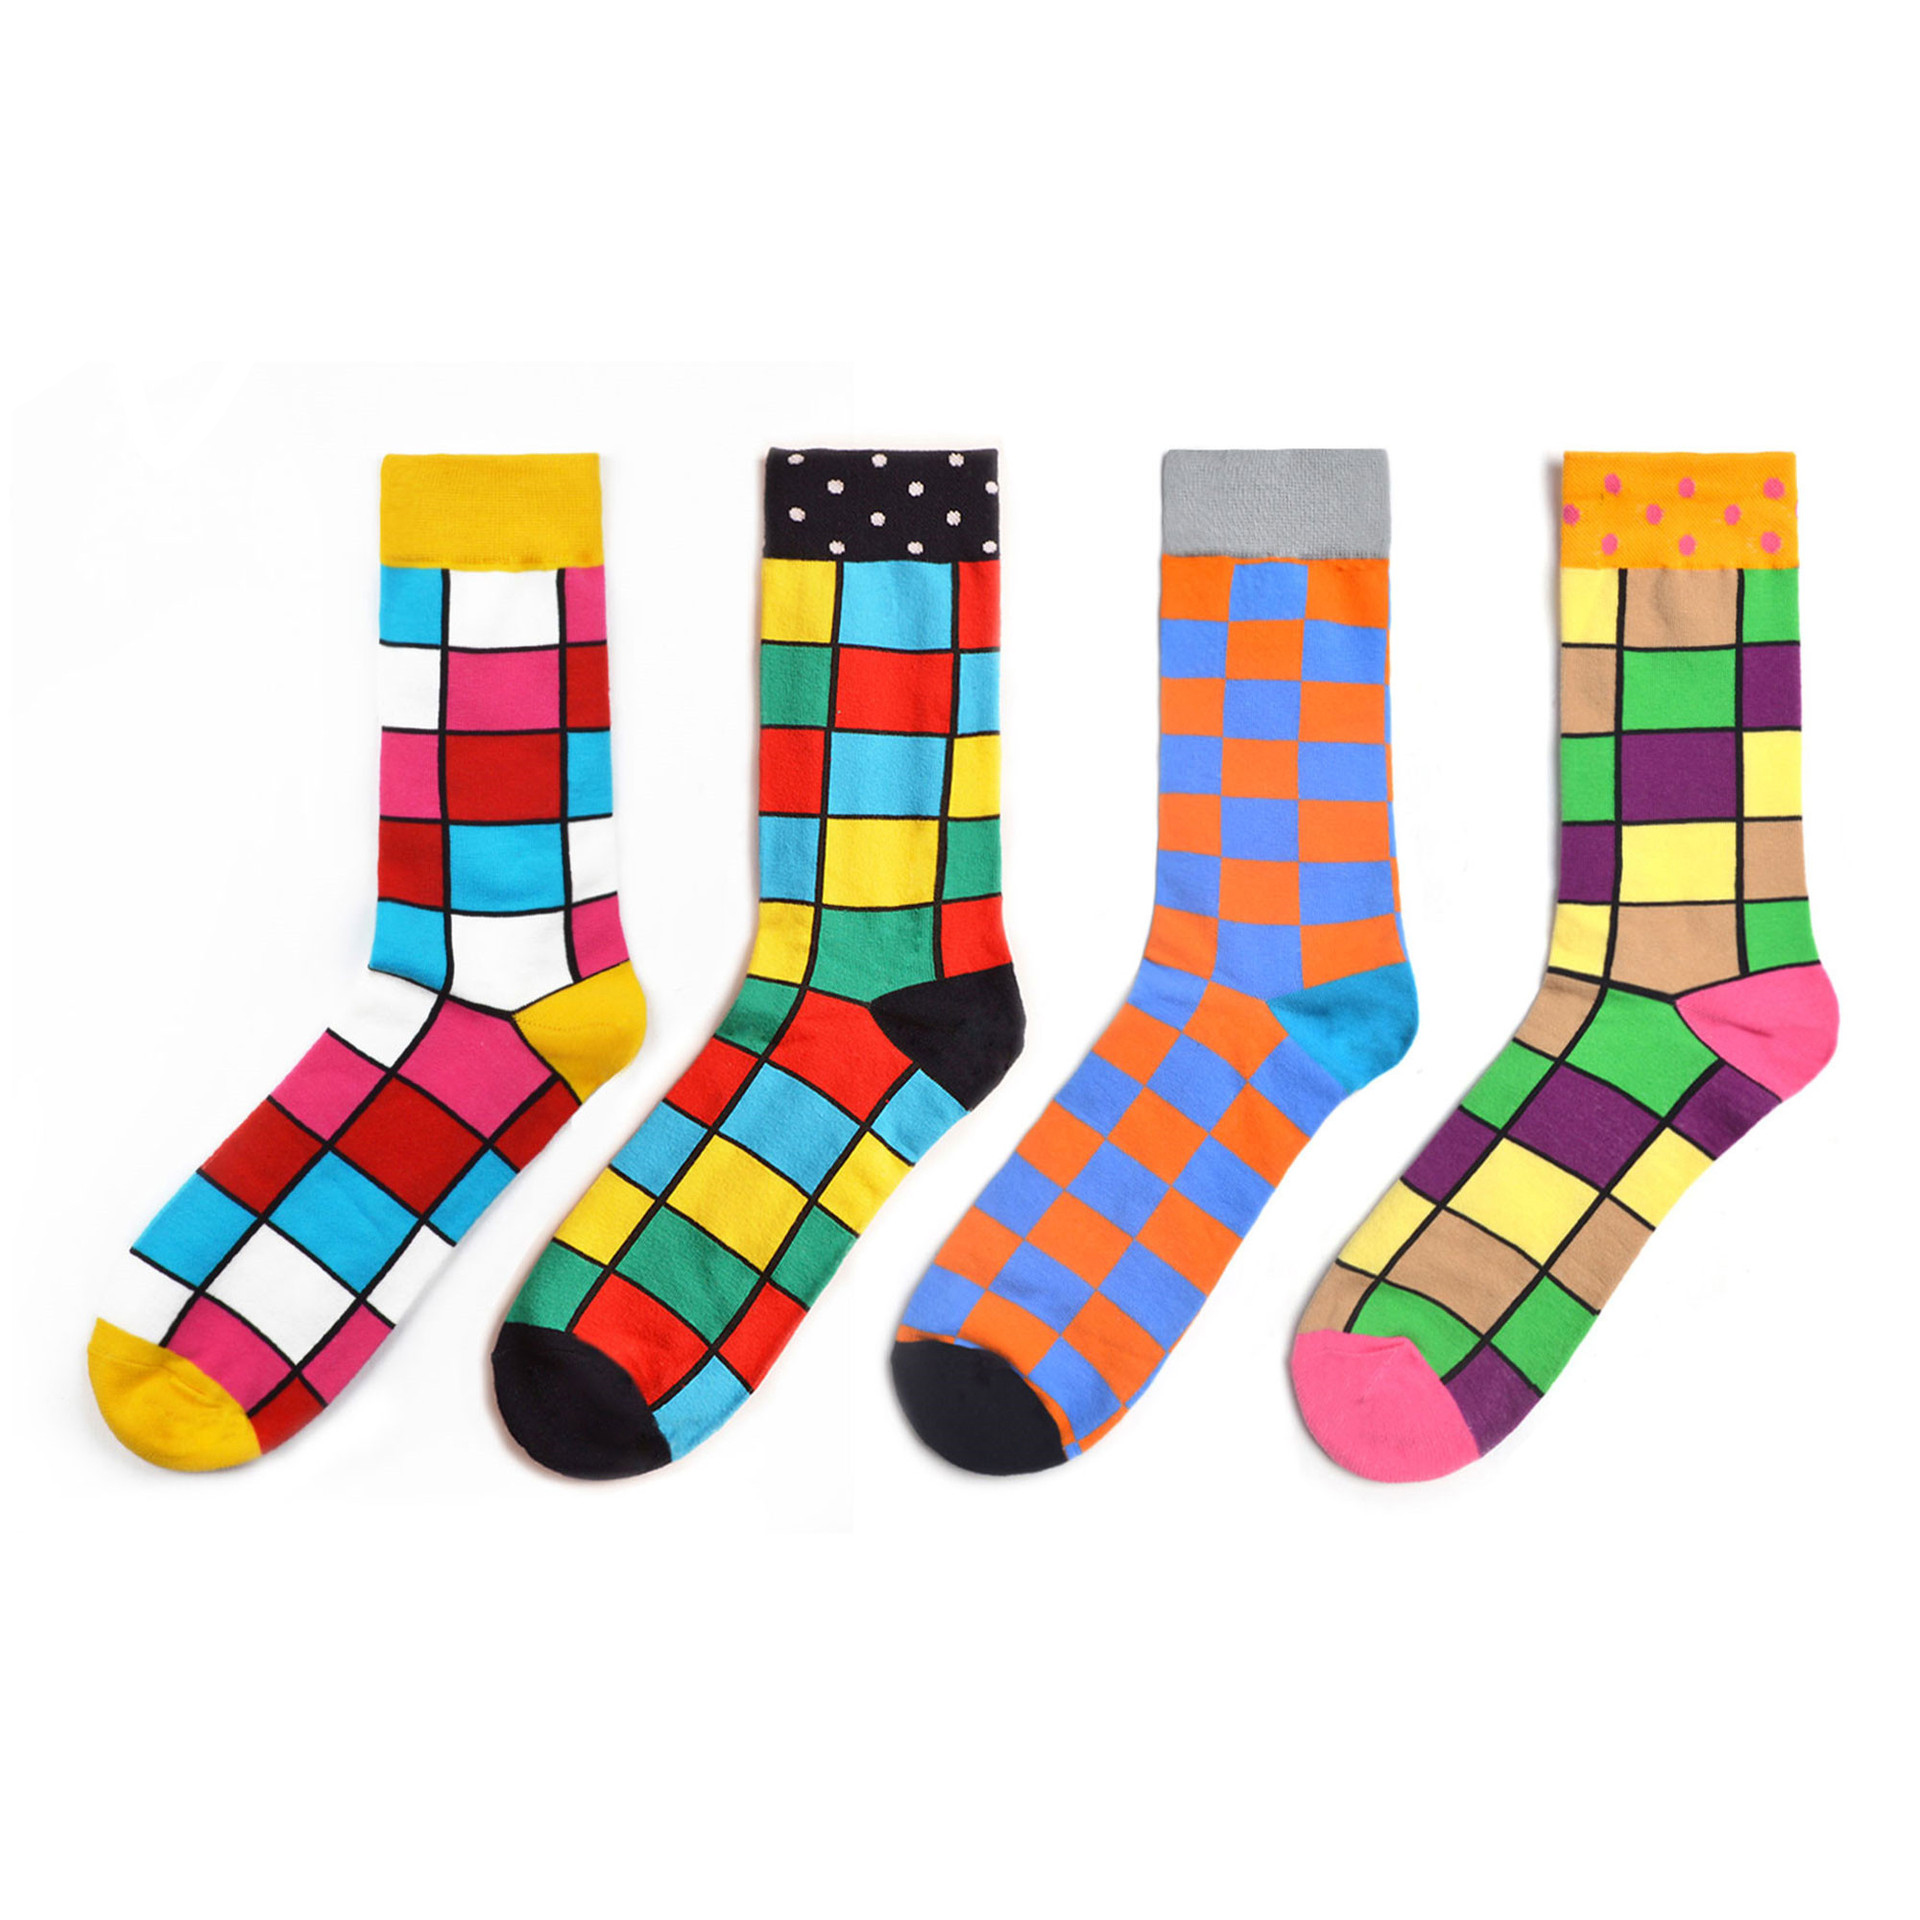 2019 New 1 Pair Brand Men Colorful Combed Cotton Happy Socks Causal Bright Street Dress Socks Funny Gift Wedding Socks SA-8